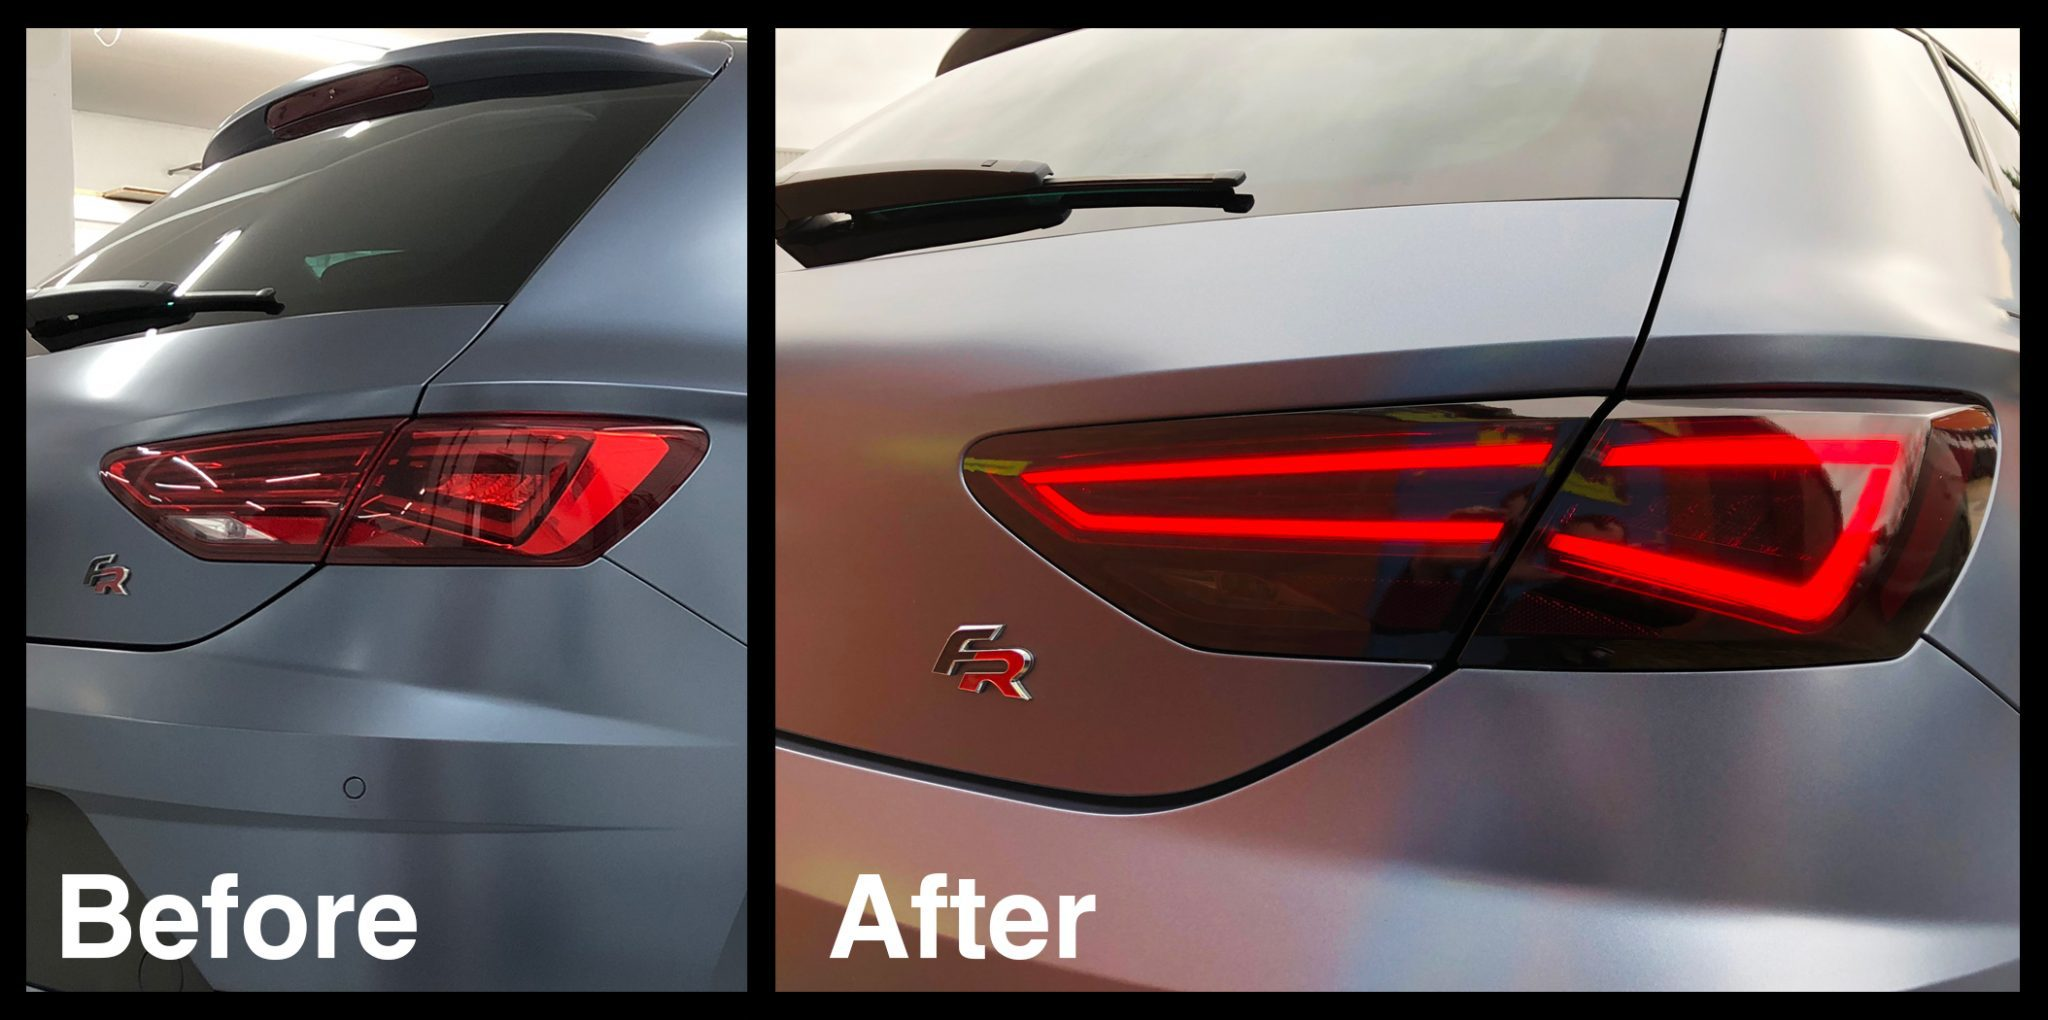 car t light with image of before and after